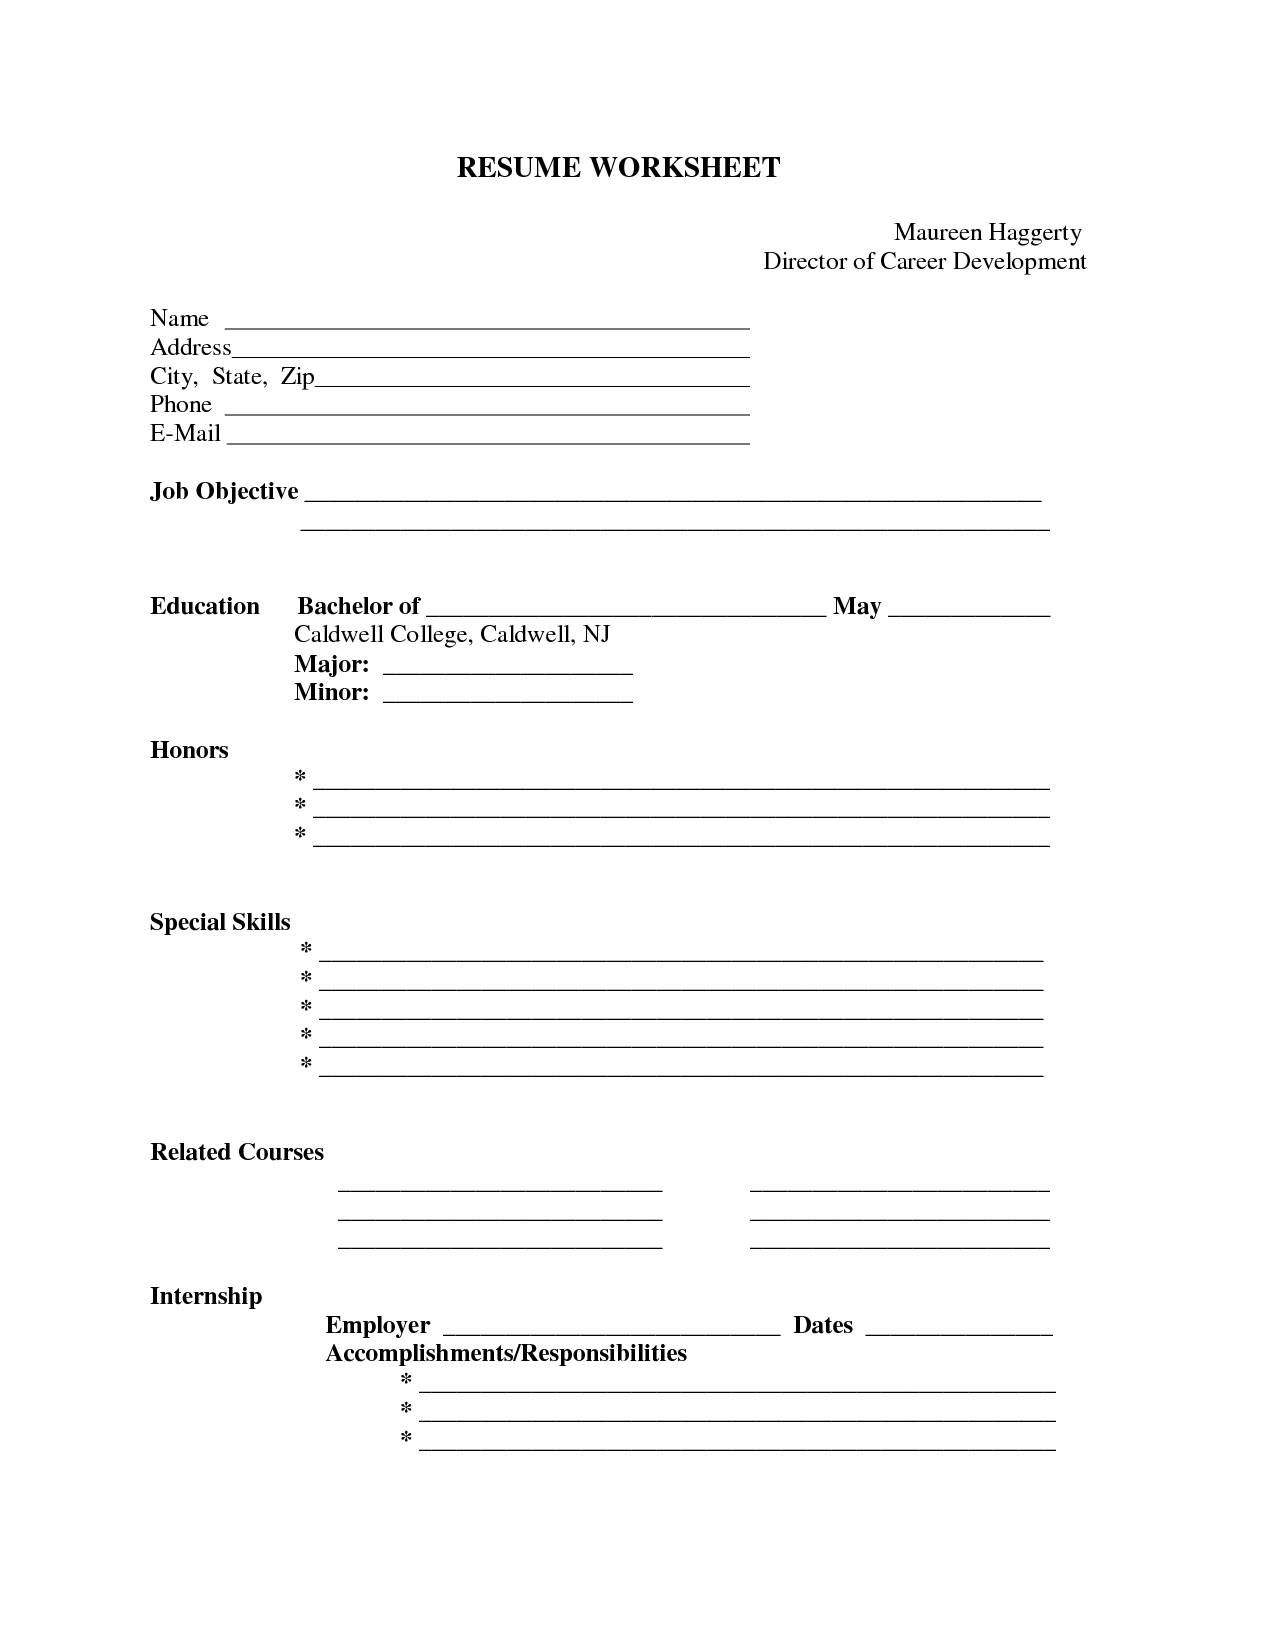 Pin by resumejob on Resume Job | Free printable resume, Free ...